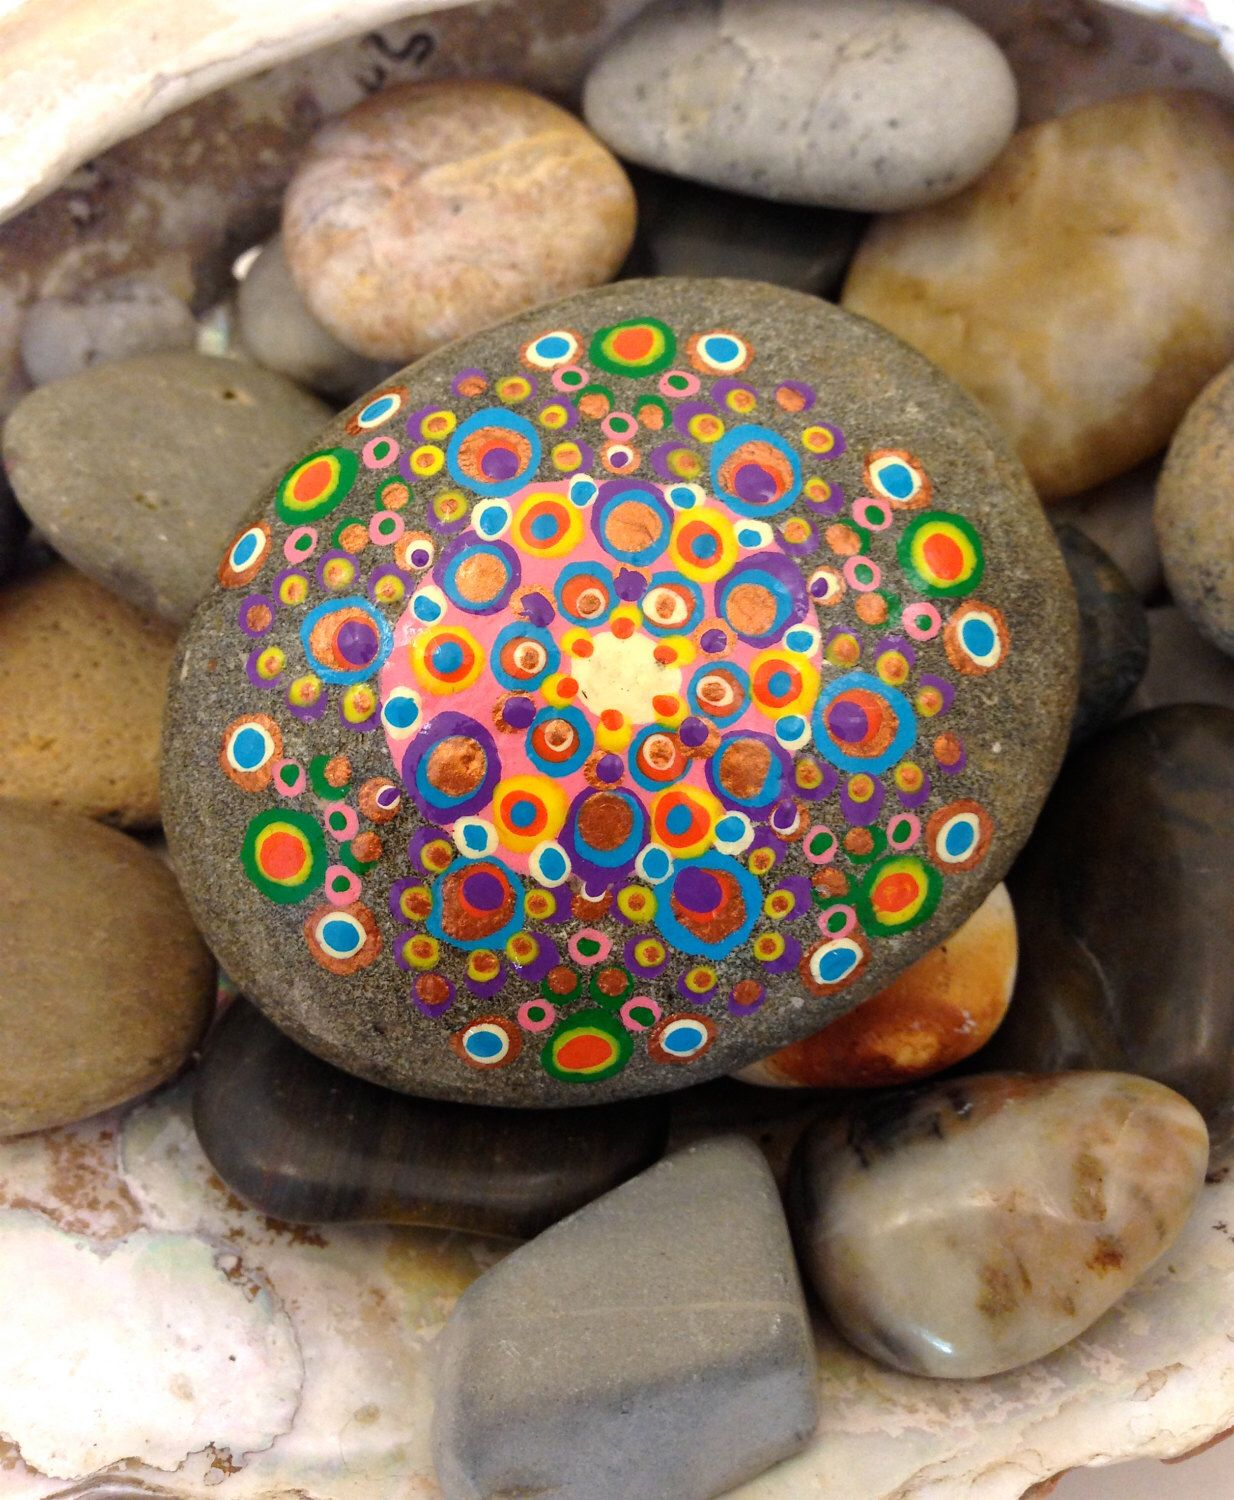 "Mandala Stone ""Cosmic Rainbow"" Pink, Green, Orange, Blue, Purple, Yellow, Copper Hand Painted Dot Work Design Beach Stone by BlueLotusHemp on Etsy https://www.etsy.com/listing/209857210/mandala-stone-cosmic-rainbow-pink-green"